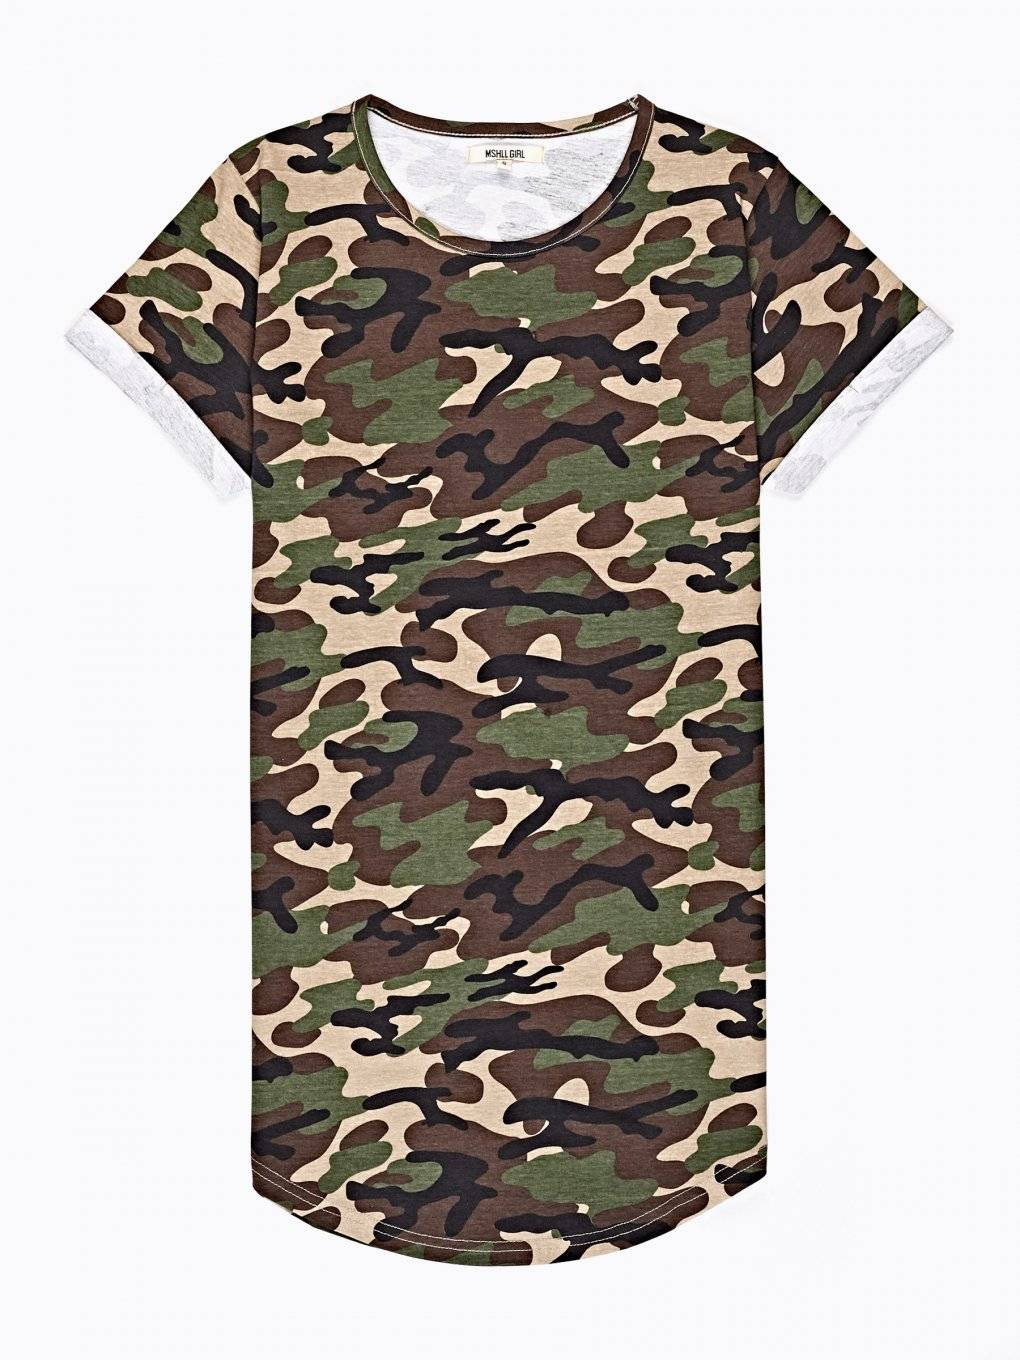 Camo print t-shirt with print on back